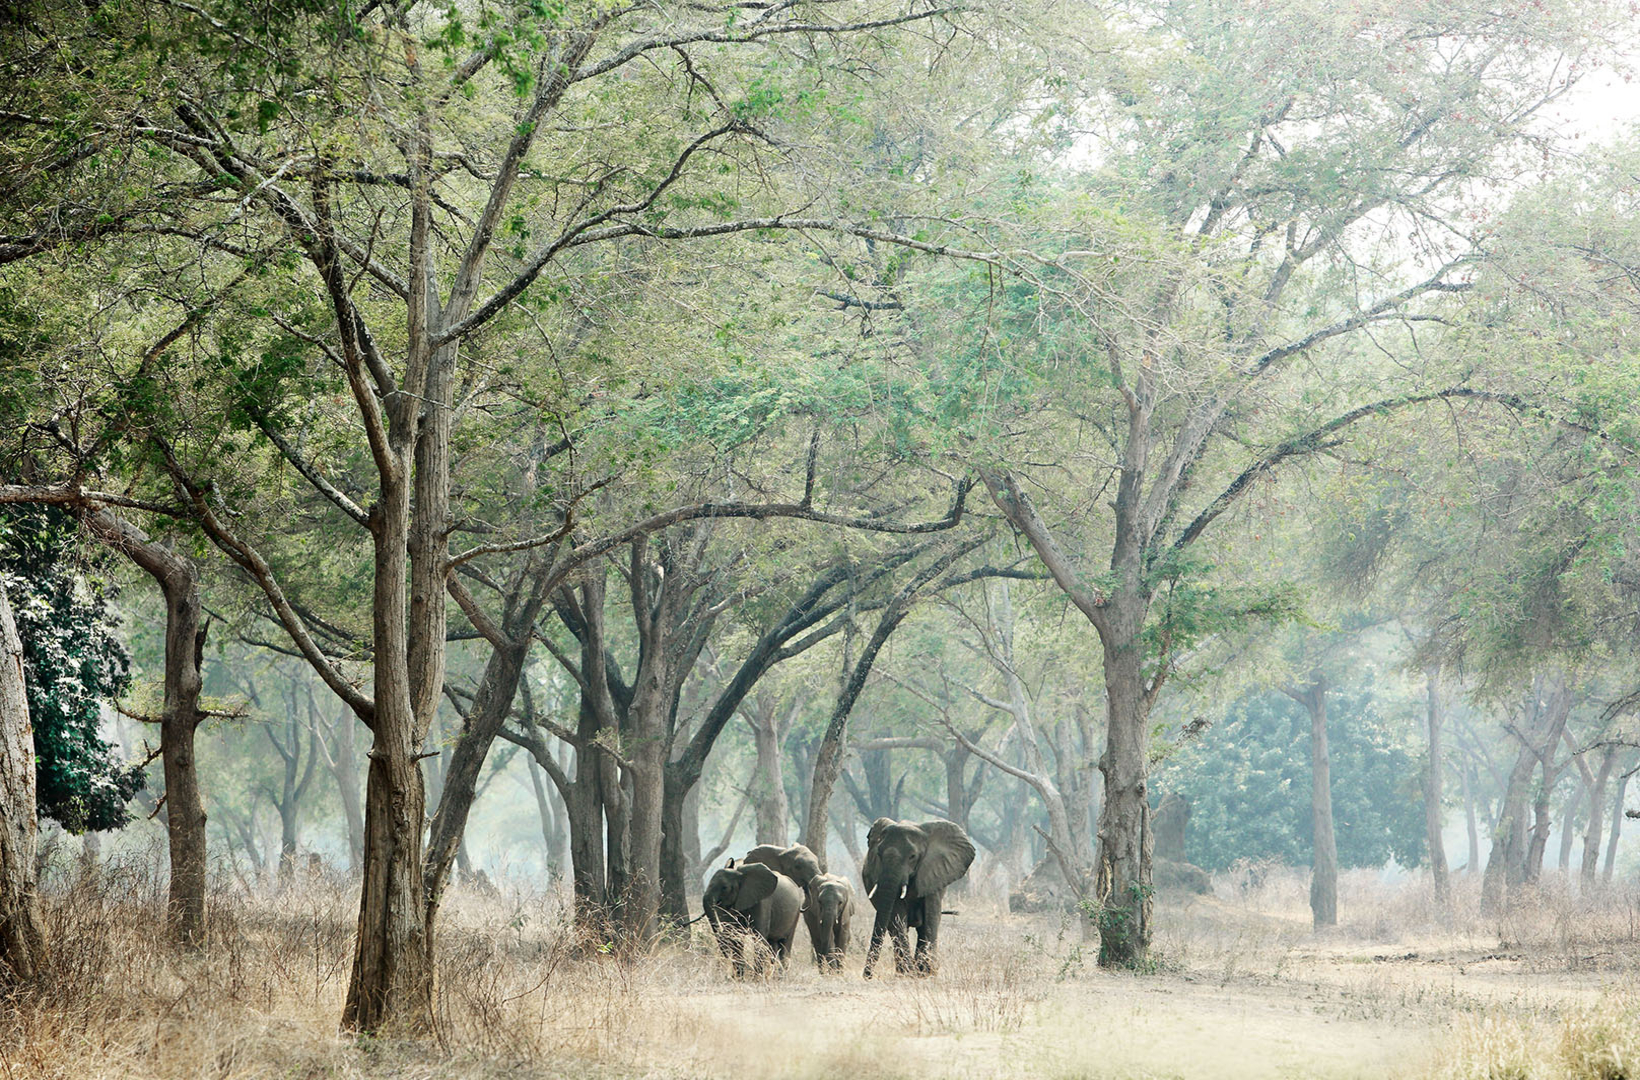 African elephants walking through forest at Mana Pools National Park in Zimbabwe